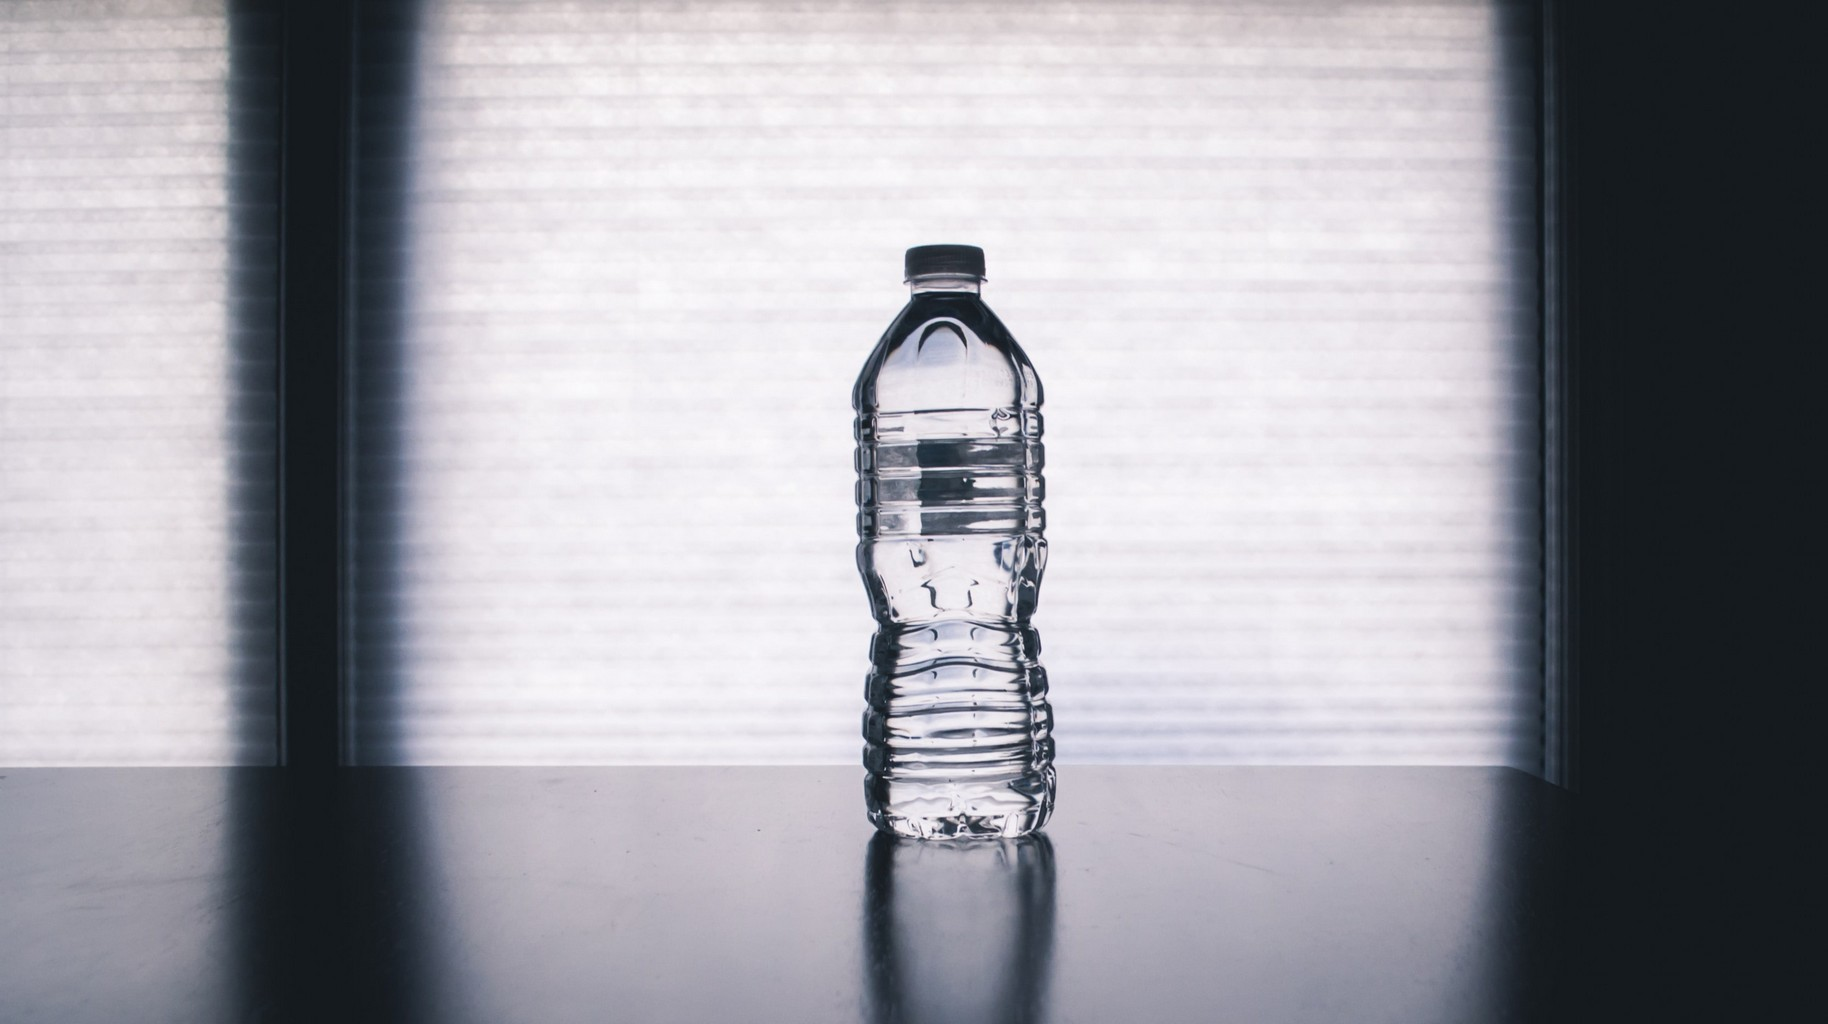 a full bottle of water, with no label, on a black table with a shadowed white background.